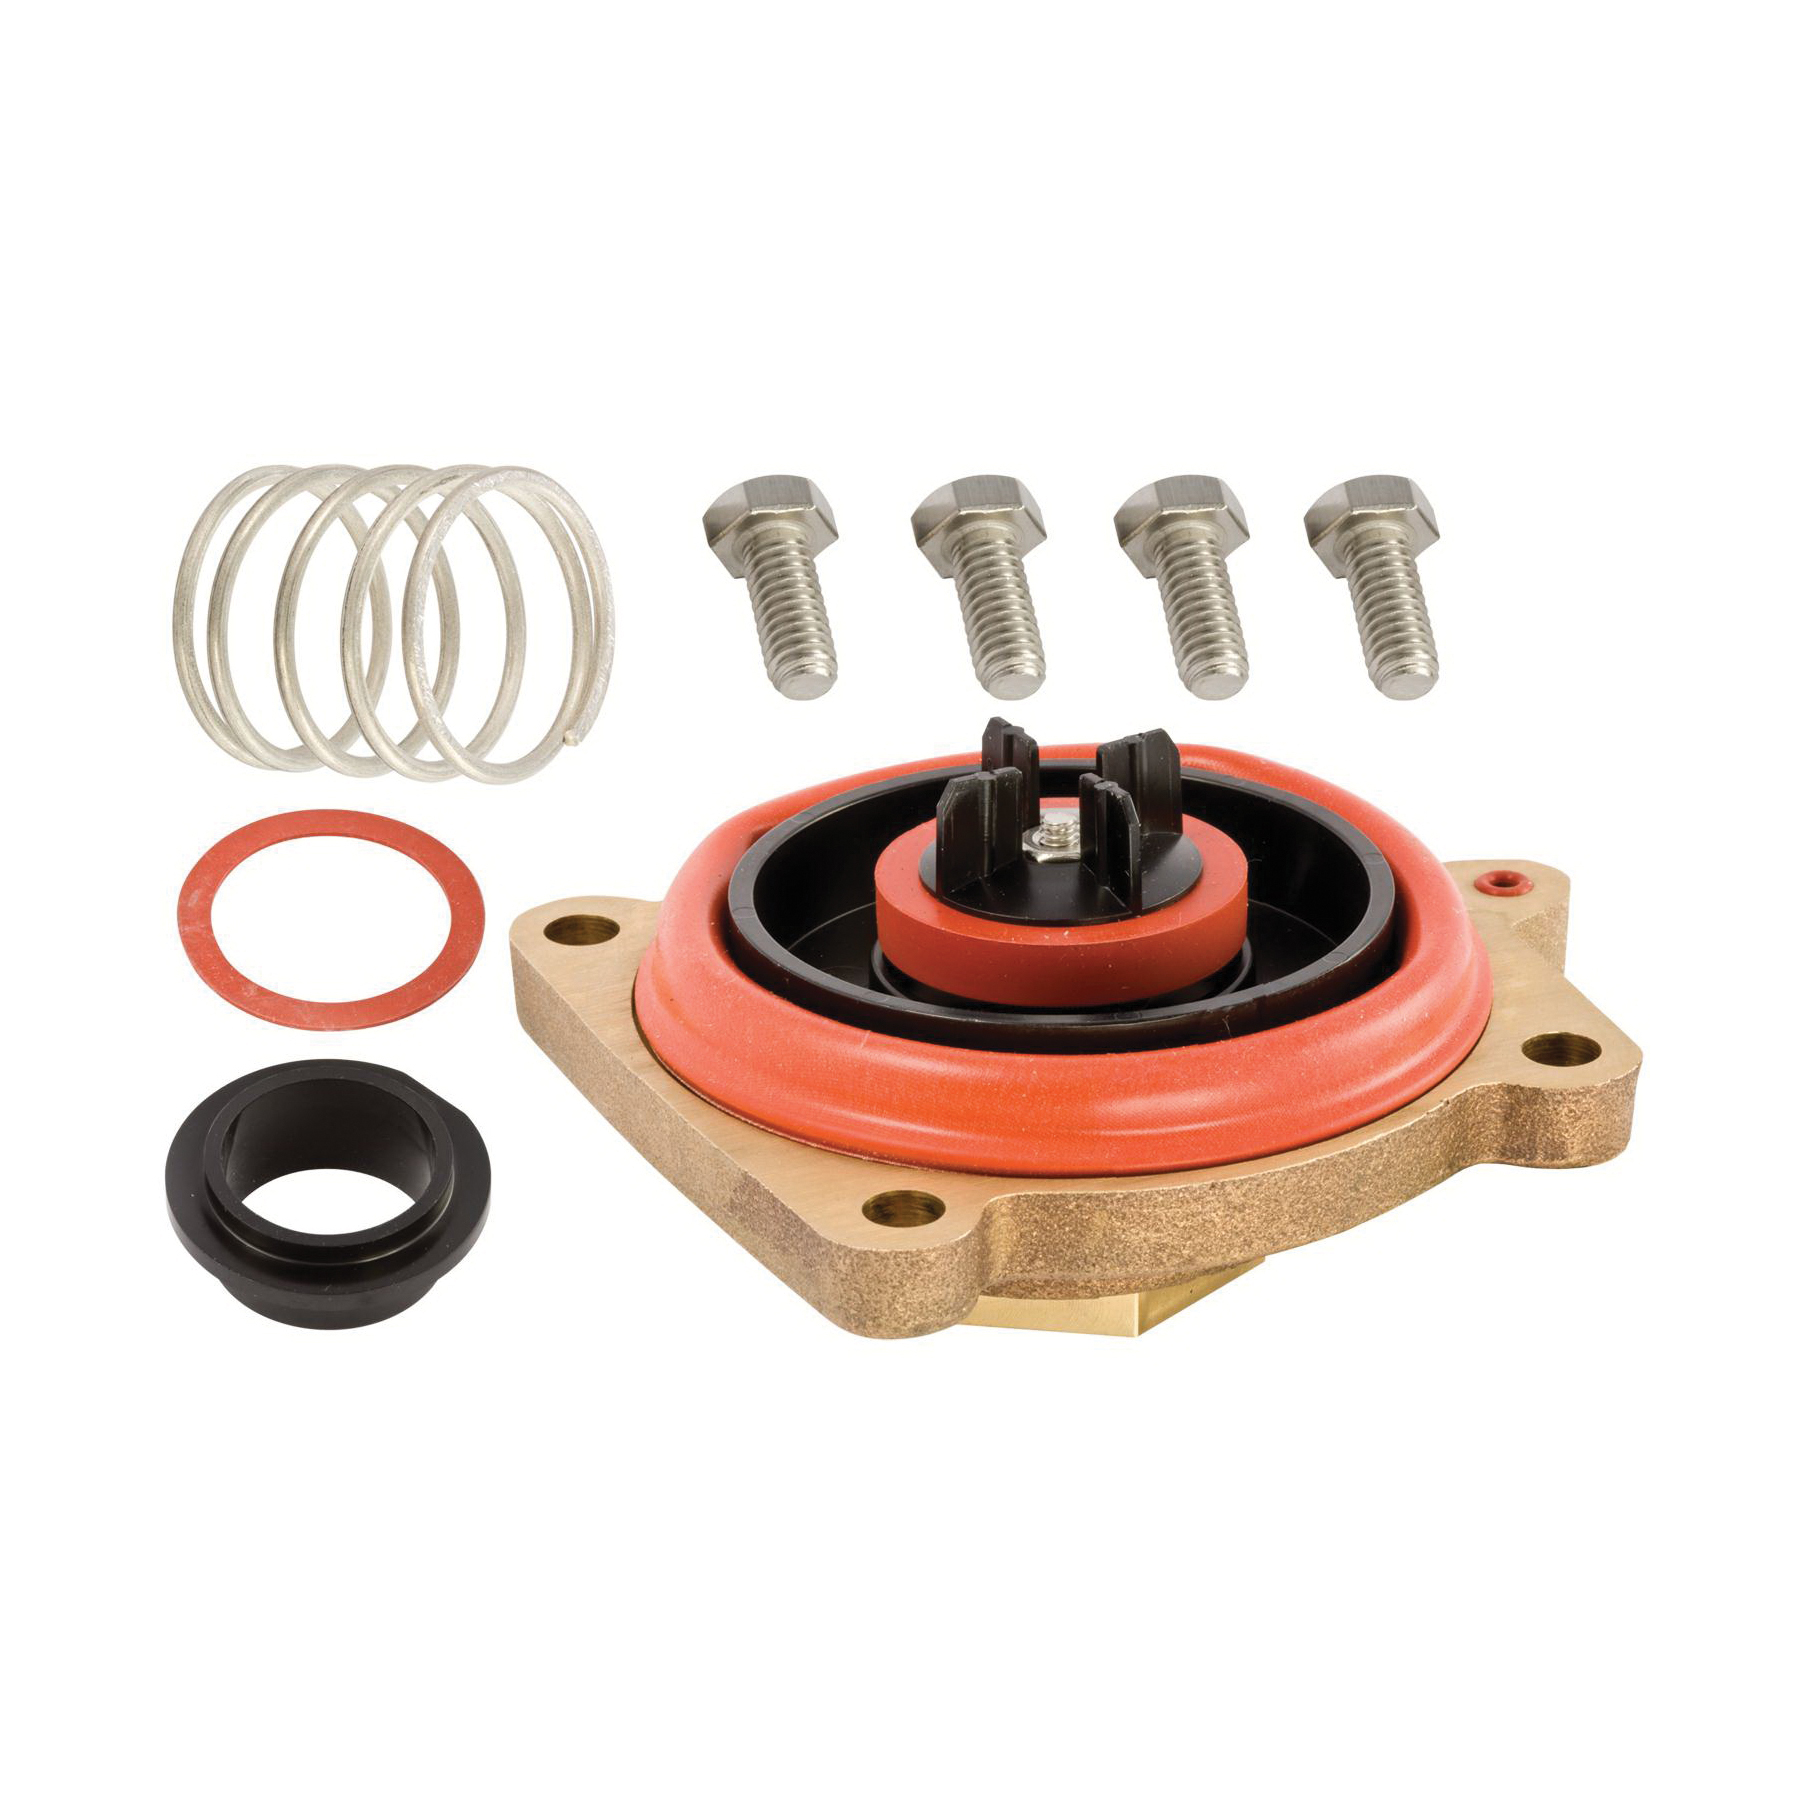 Febco® 905353 Relief Valve Kit, For Use With 860/860U Reduced Pressure Zone Assemblies